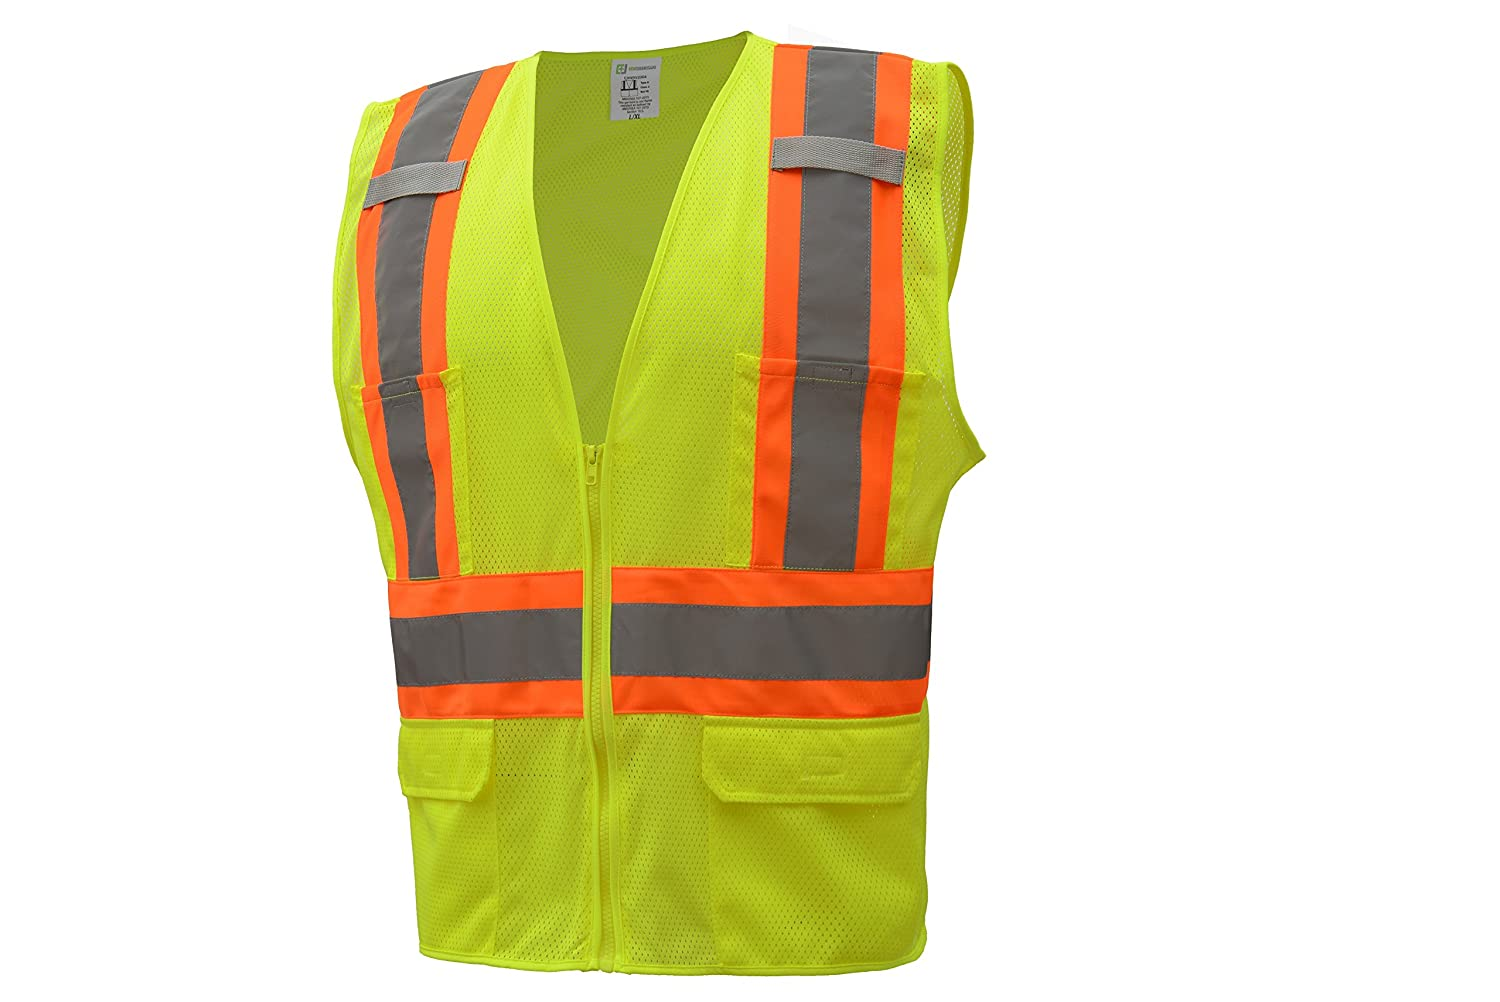 CJ Safety ANSI Class 2 High Visibility Two Tone Safety Vest - Wicking Breathable Mesh - 6 Pockets (Extra Large, Orange) General Safety Products